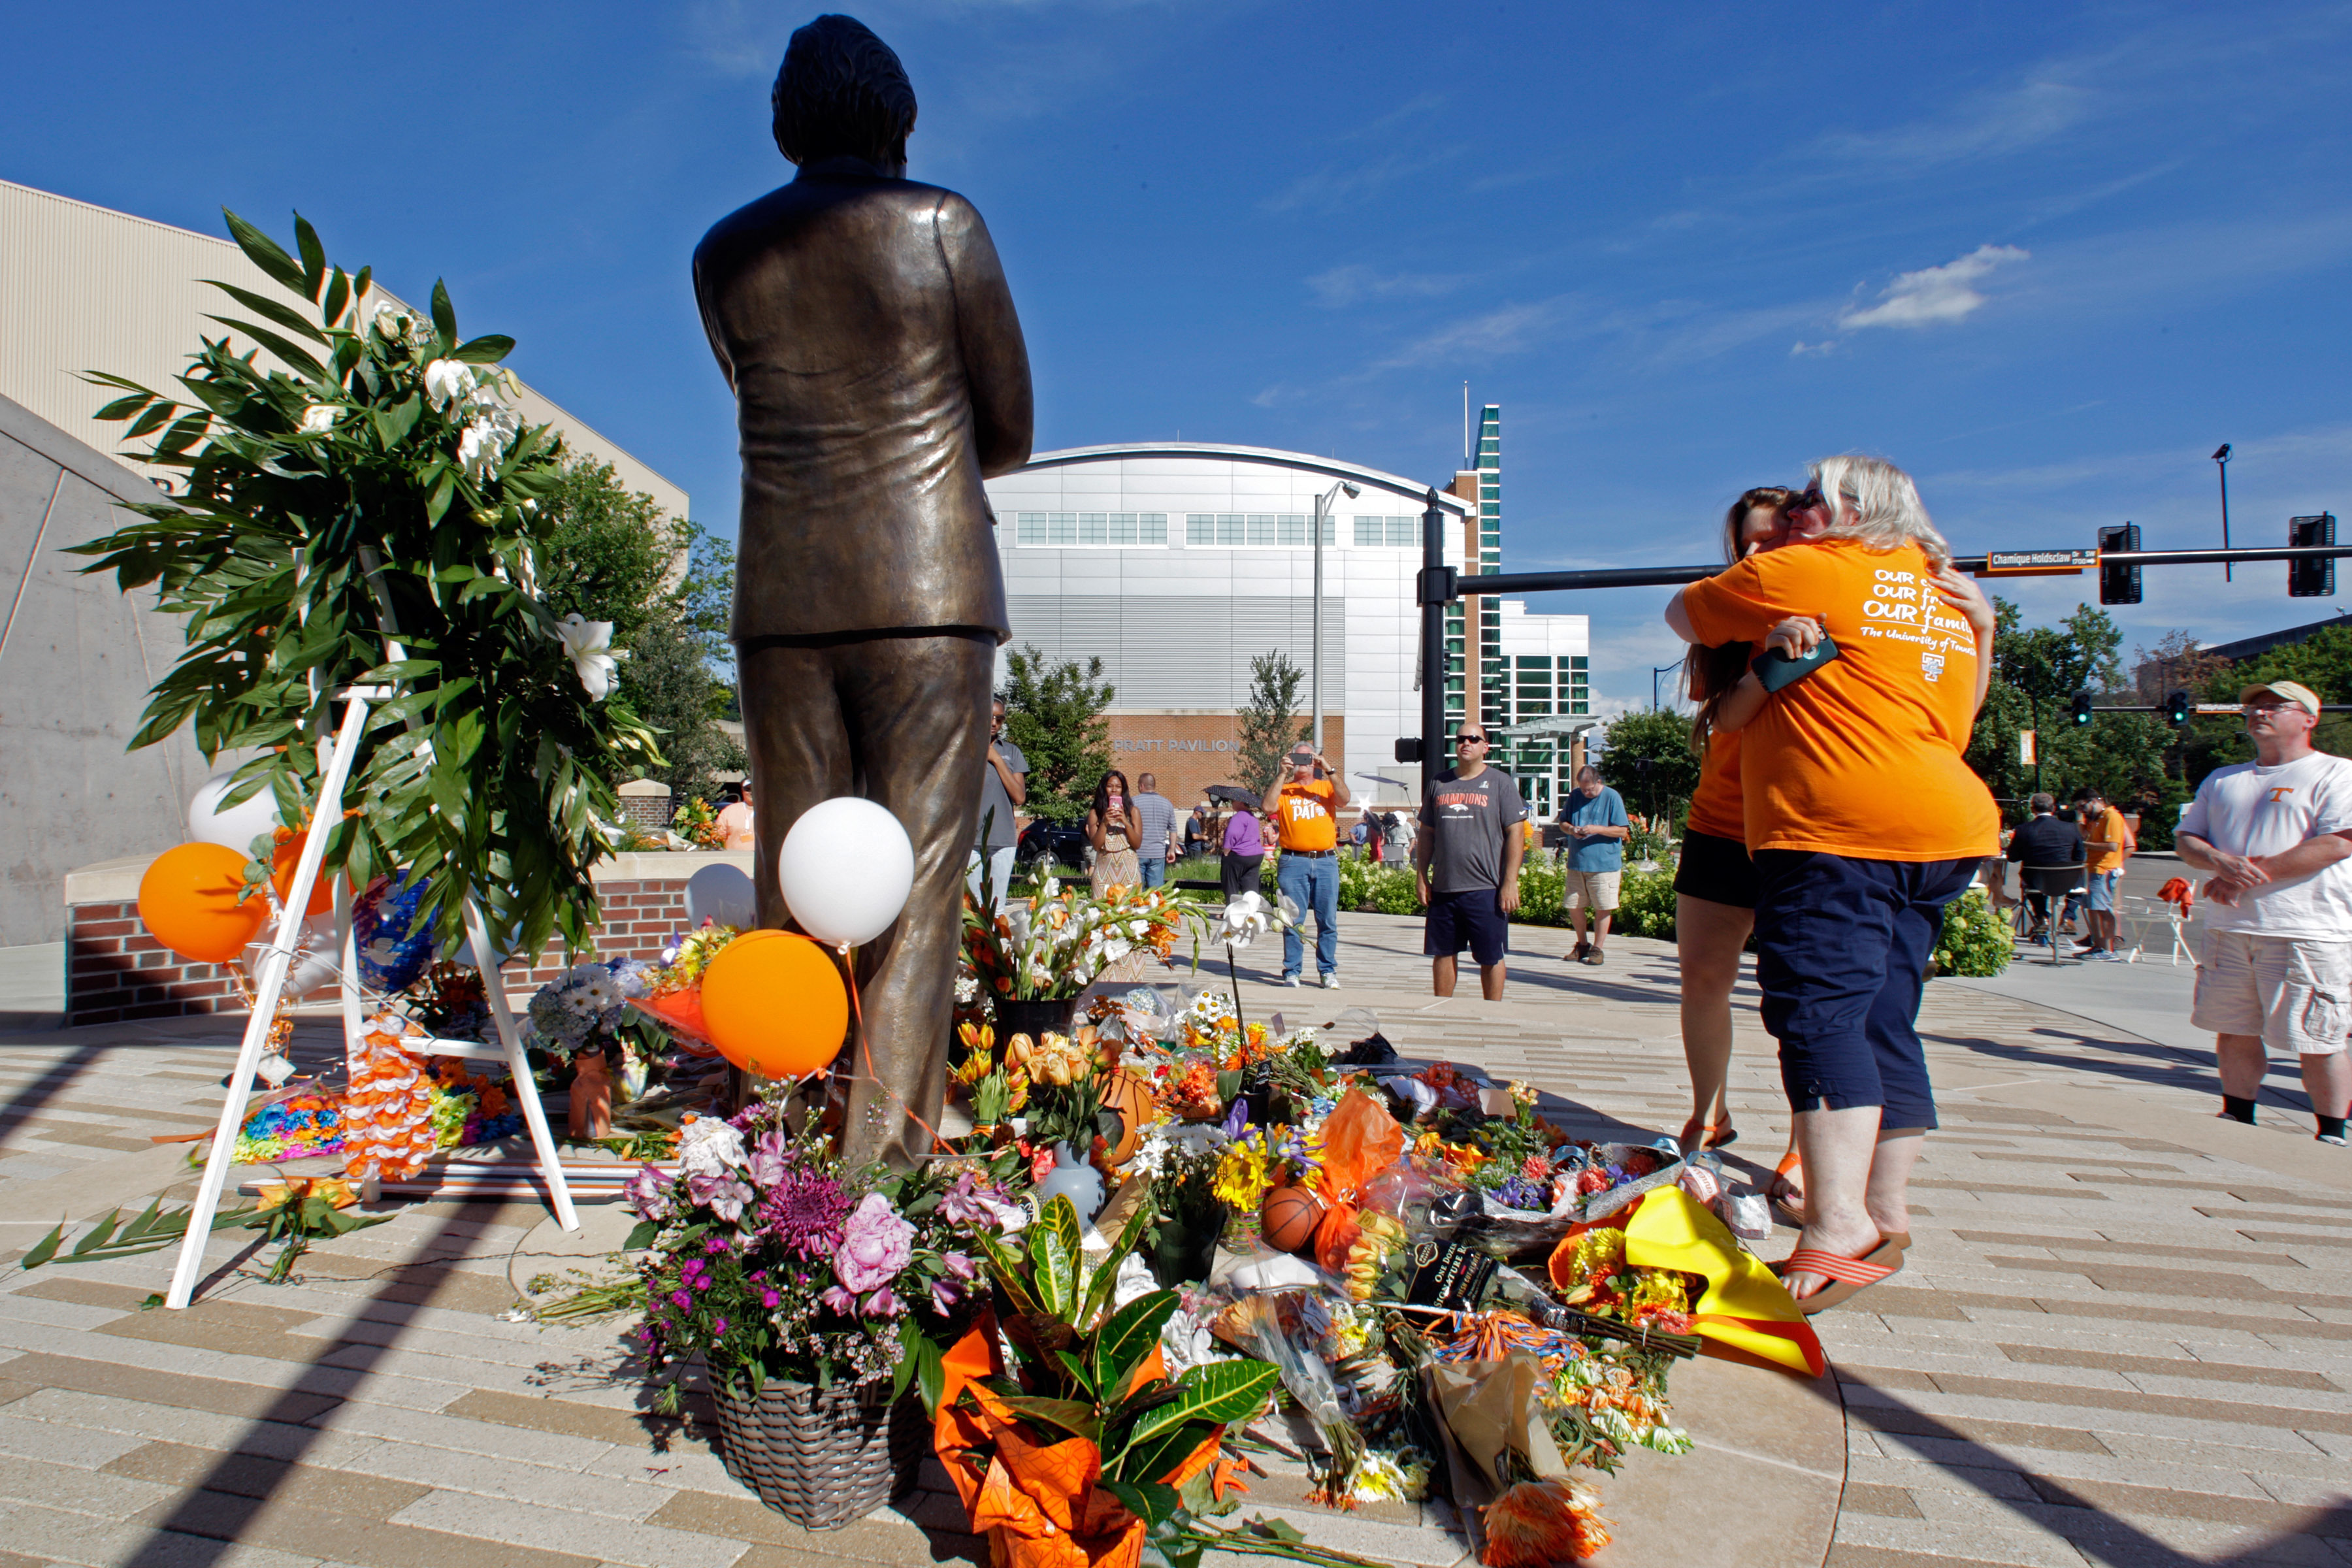 Susan Reel, right, hugs Becca Bowen near the memorial at Pat Summitt Plaza on Tuesday, June 28, 2016, in Knoxville, Tenn. Summitt, the winningest coach in Division I college basketball history who uplifted the women's game from obscurity to national promi